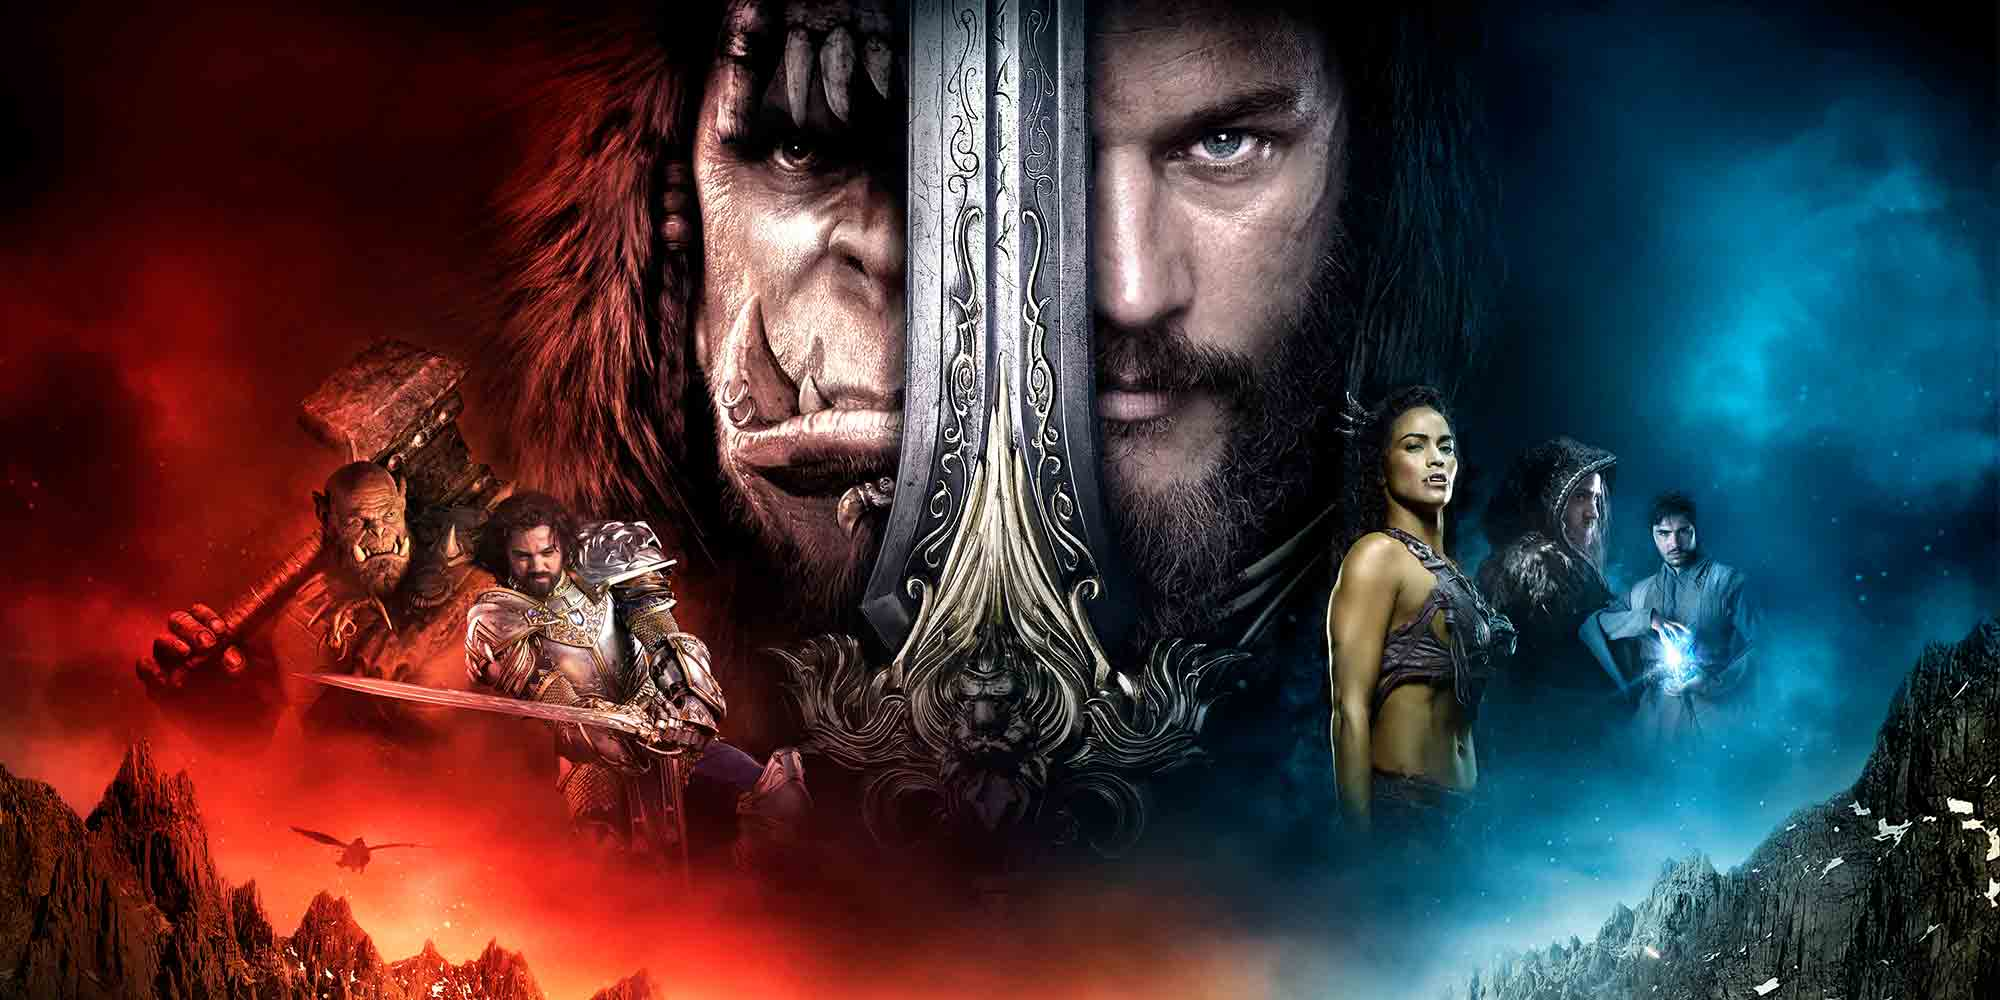 Warcraft: The Beginning - Header Image